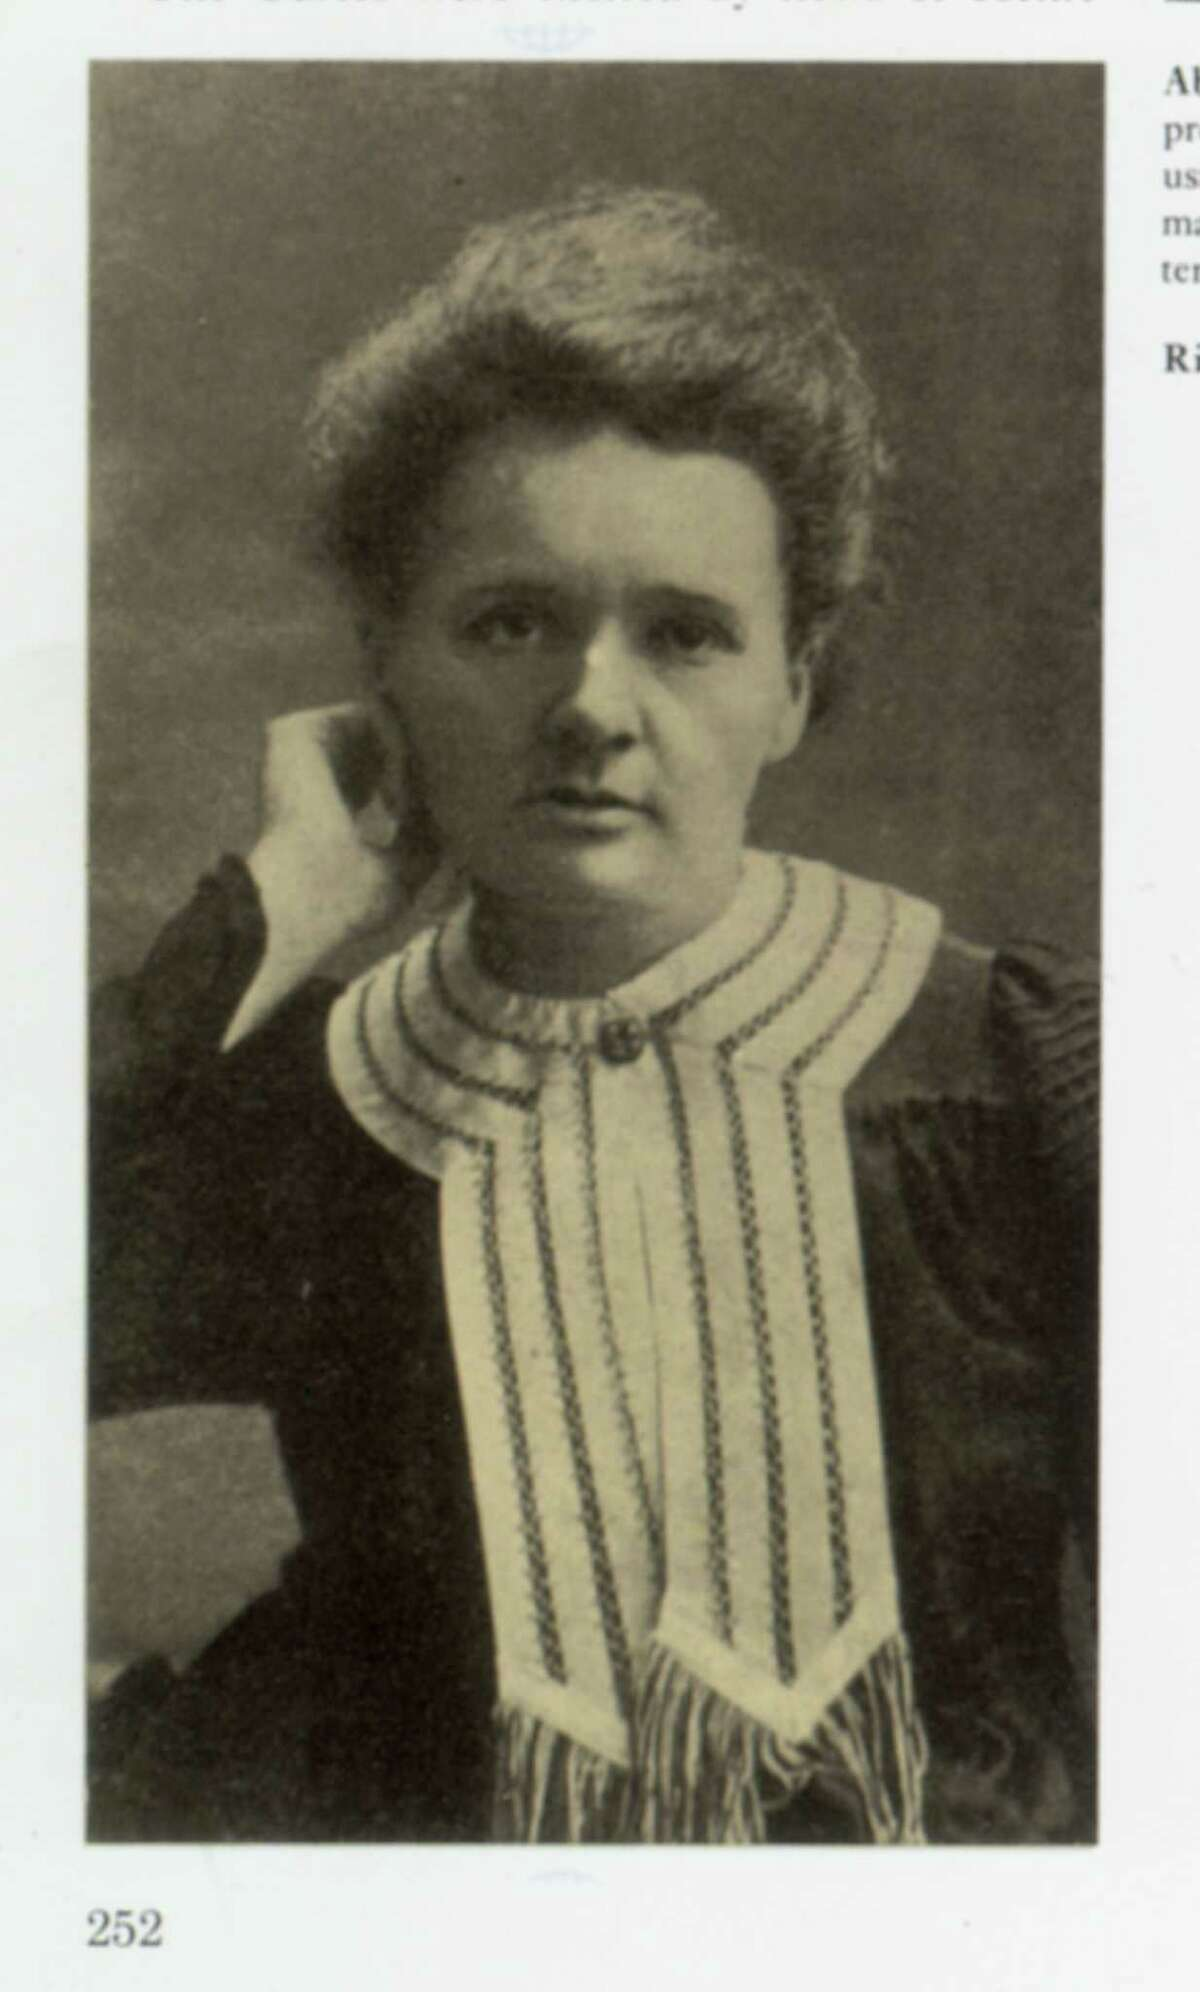 Marie Sklowdowska Curie, 1867-1934 Curie was a Polish-born chemist and pioneer in the study of radioactivity. She discovered radium and polonium. With her husband, Pierre, she won two Nobel Prizes. Her daughter, Irene Joliot-Curie, was also a renowned chemist and herself won a Nobel.